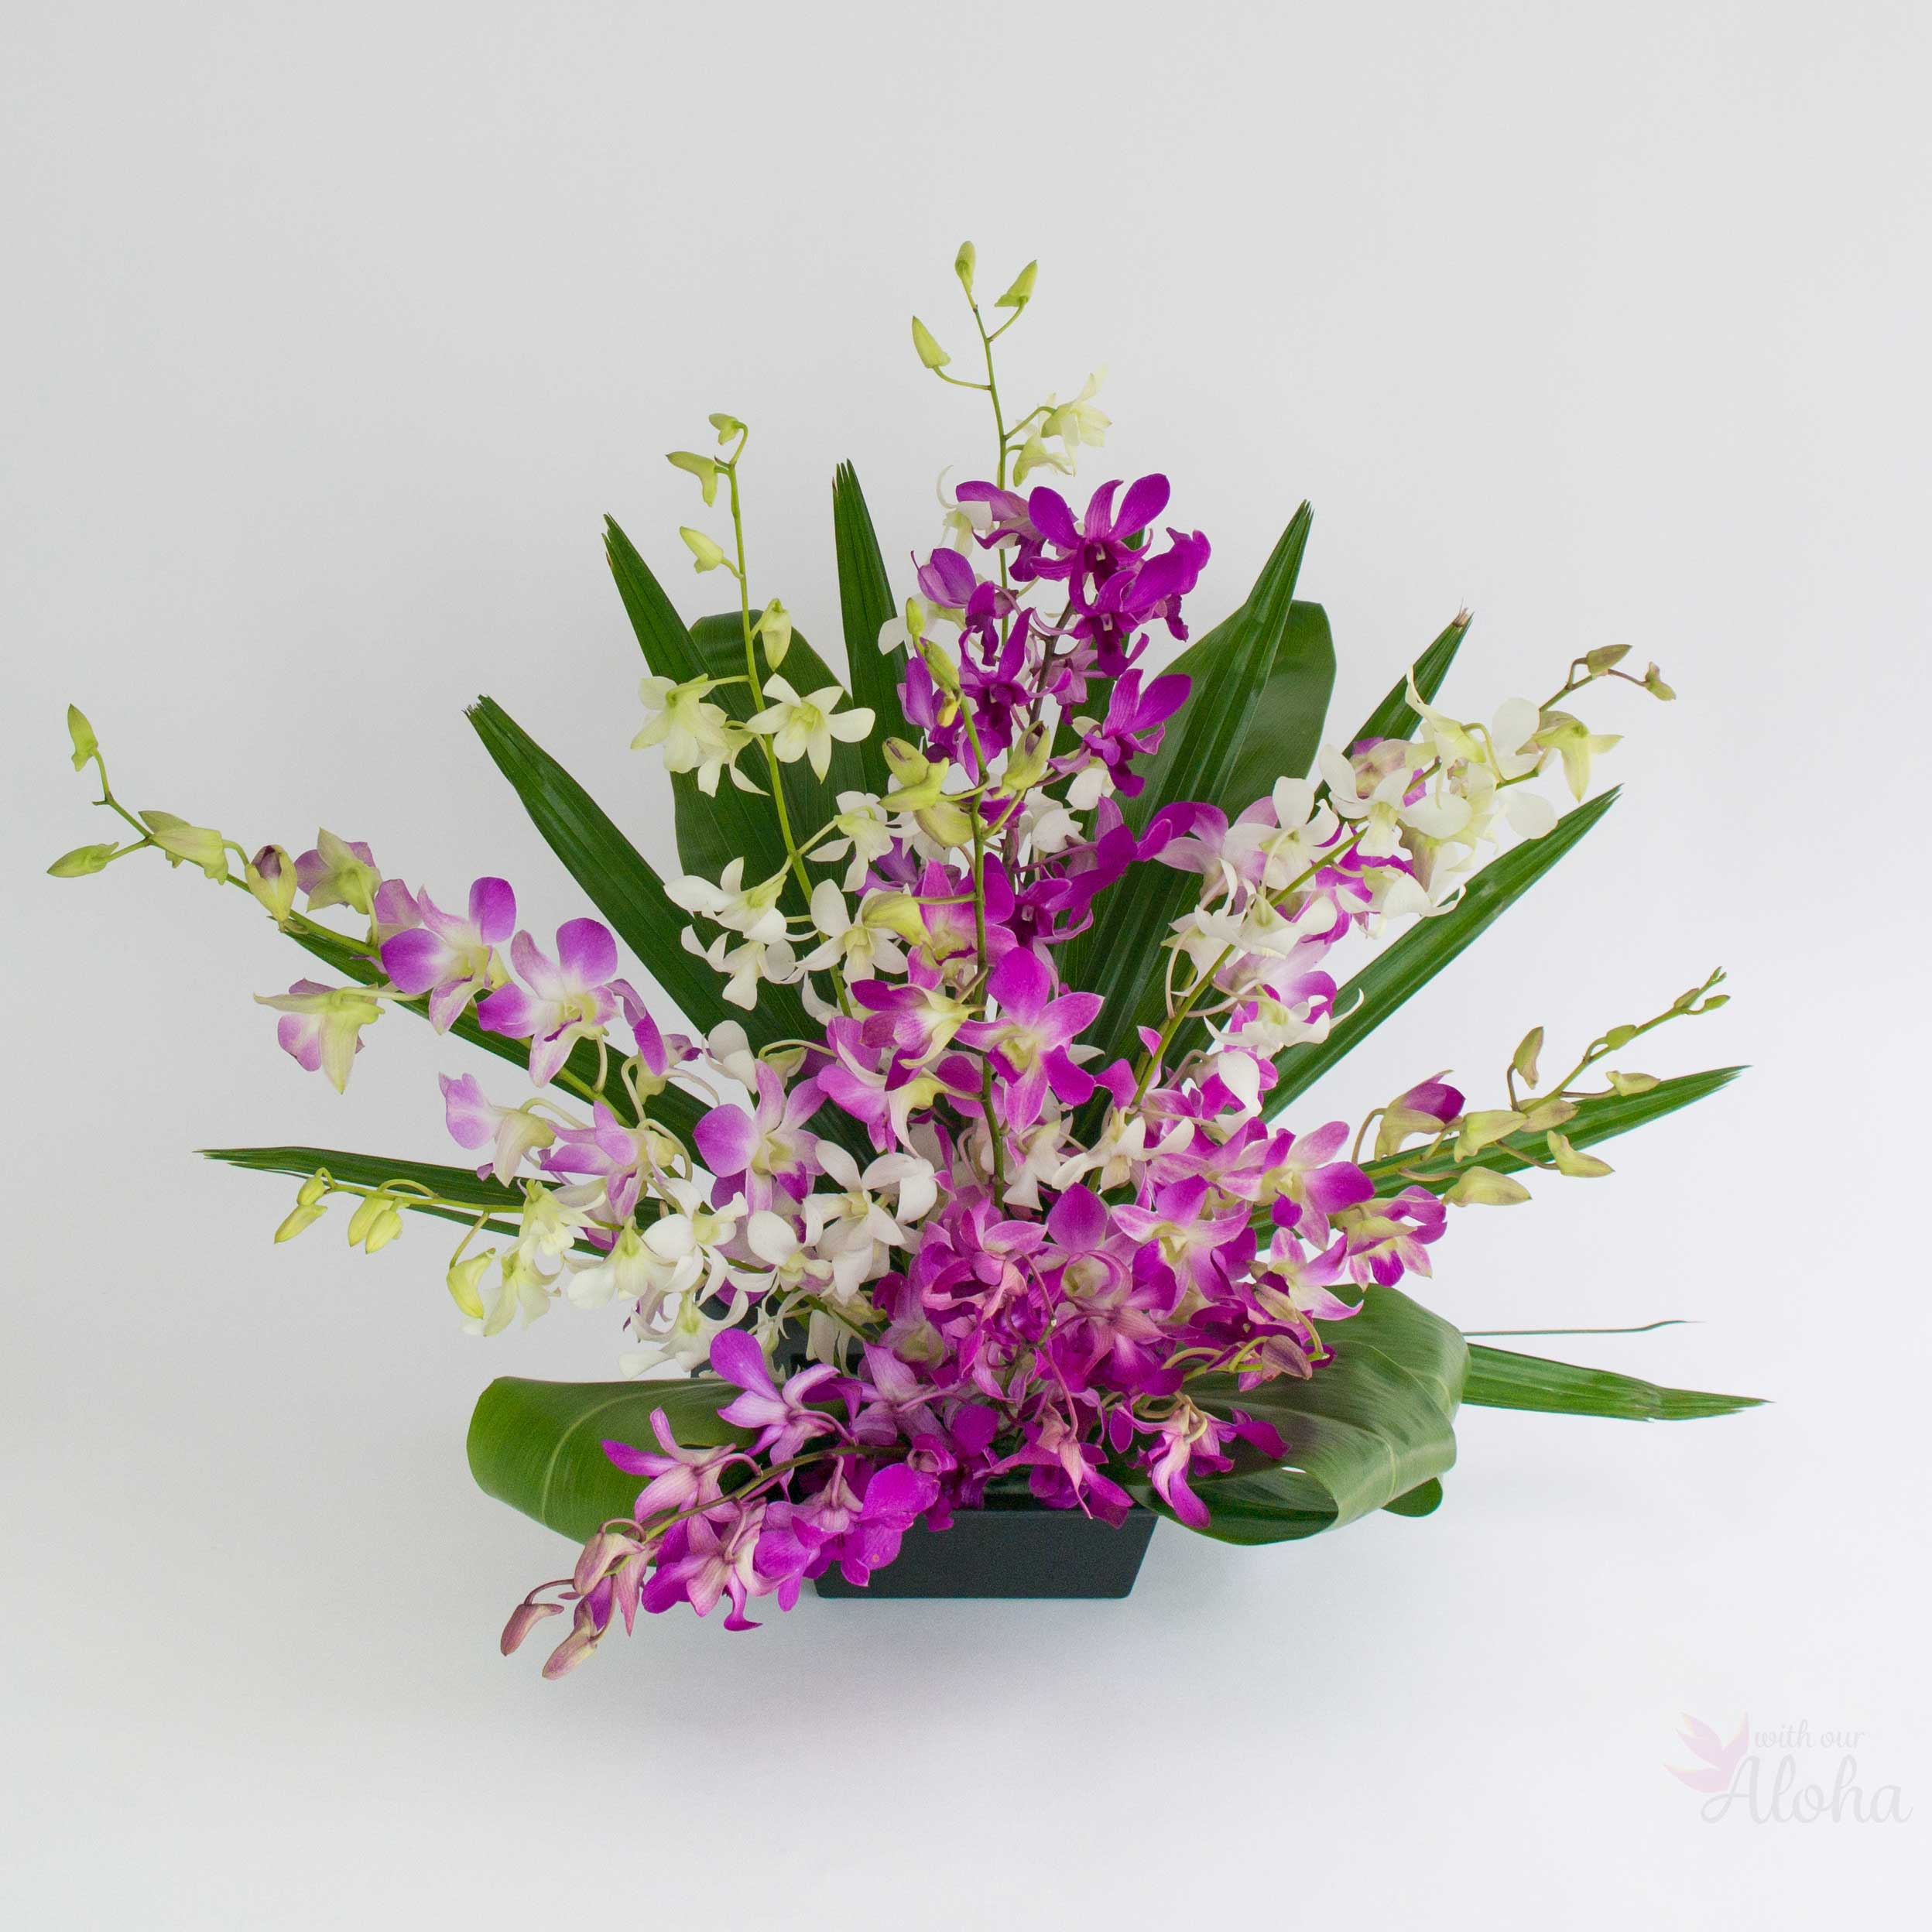 Okika orchids hawaiian flower assortments okika orchids hawaiian flower assortments izmirmasajfo